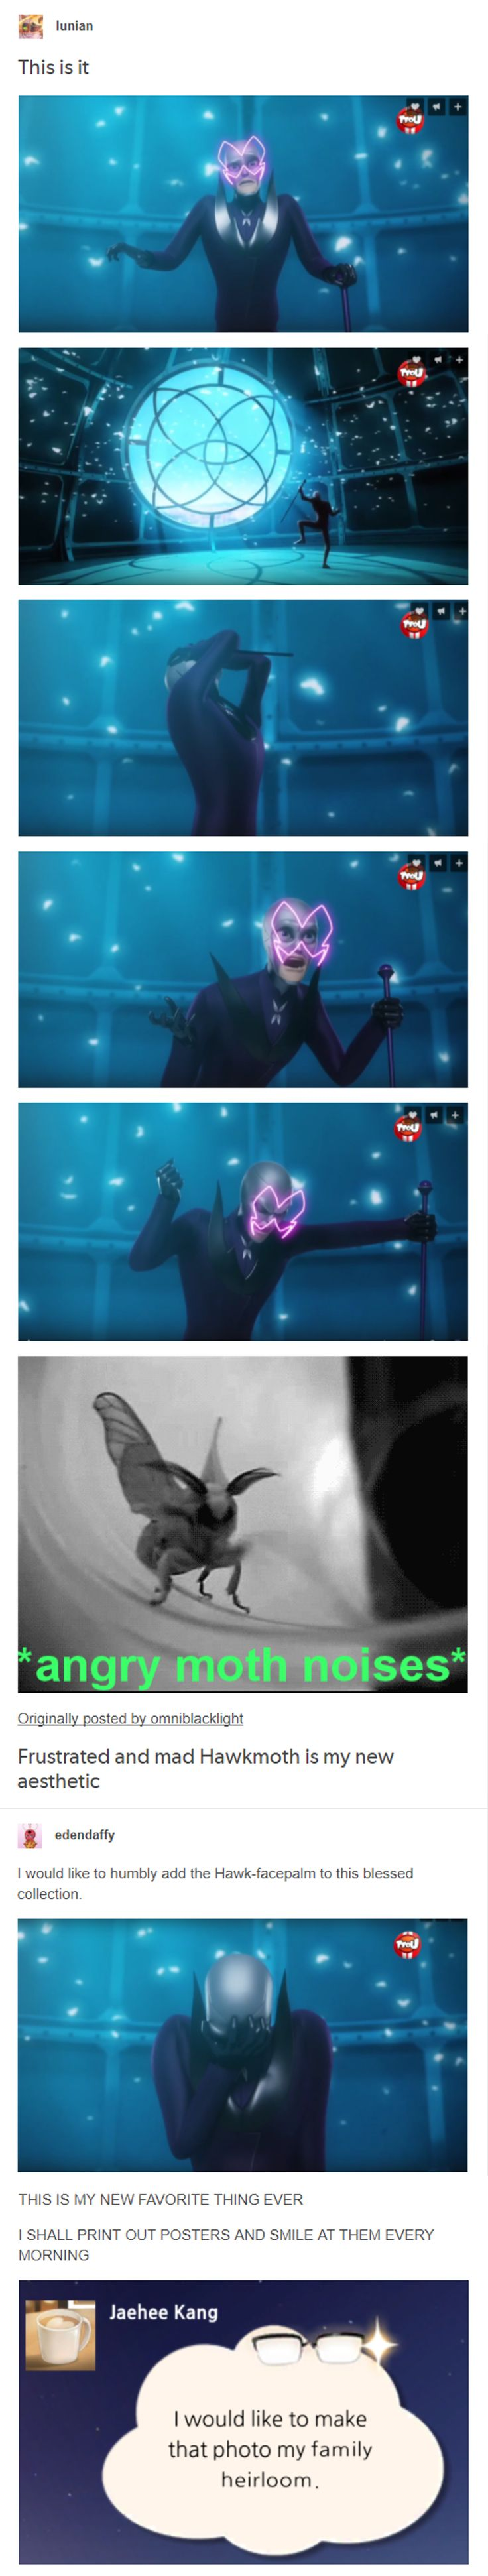 I love how personable they made Hawkmoth now that we know who he is.